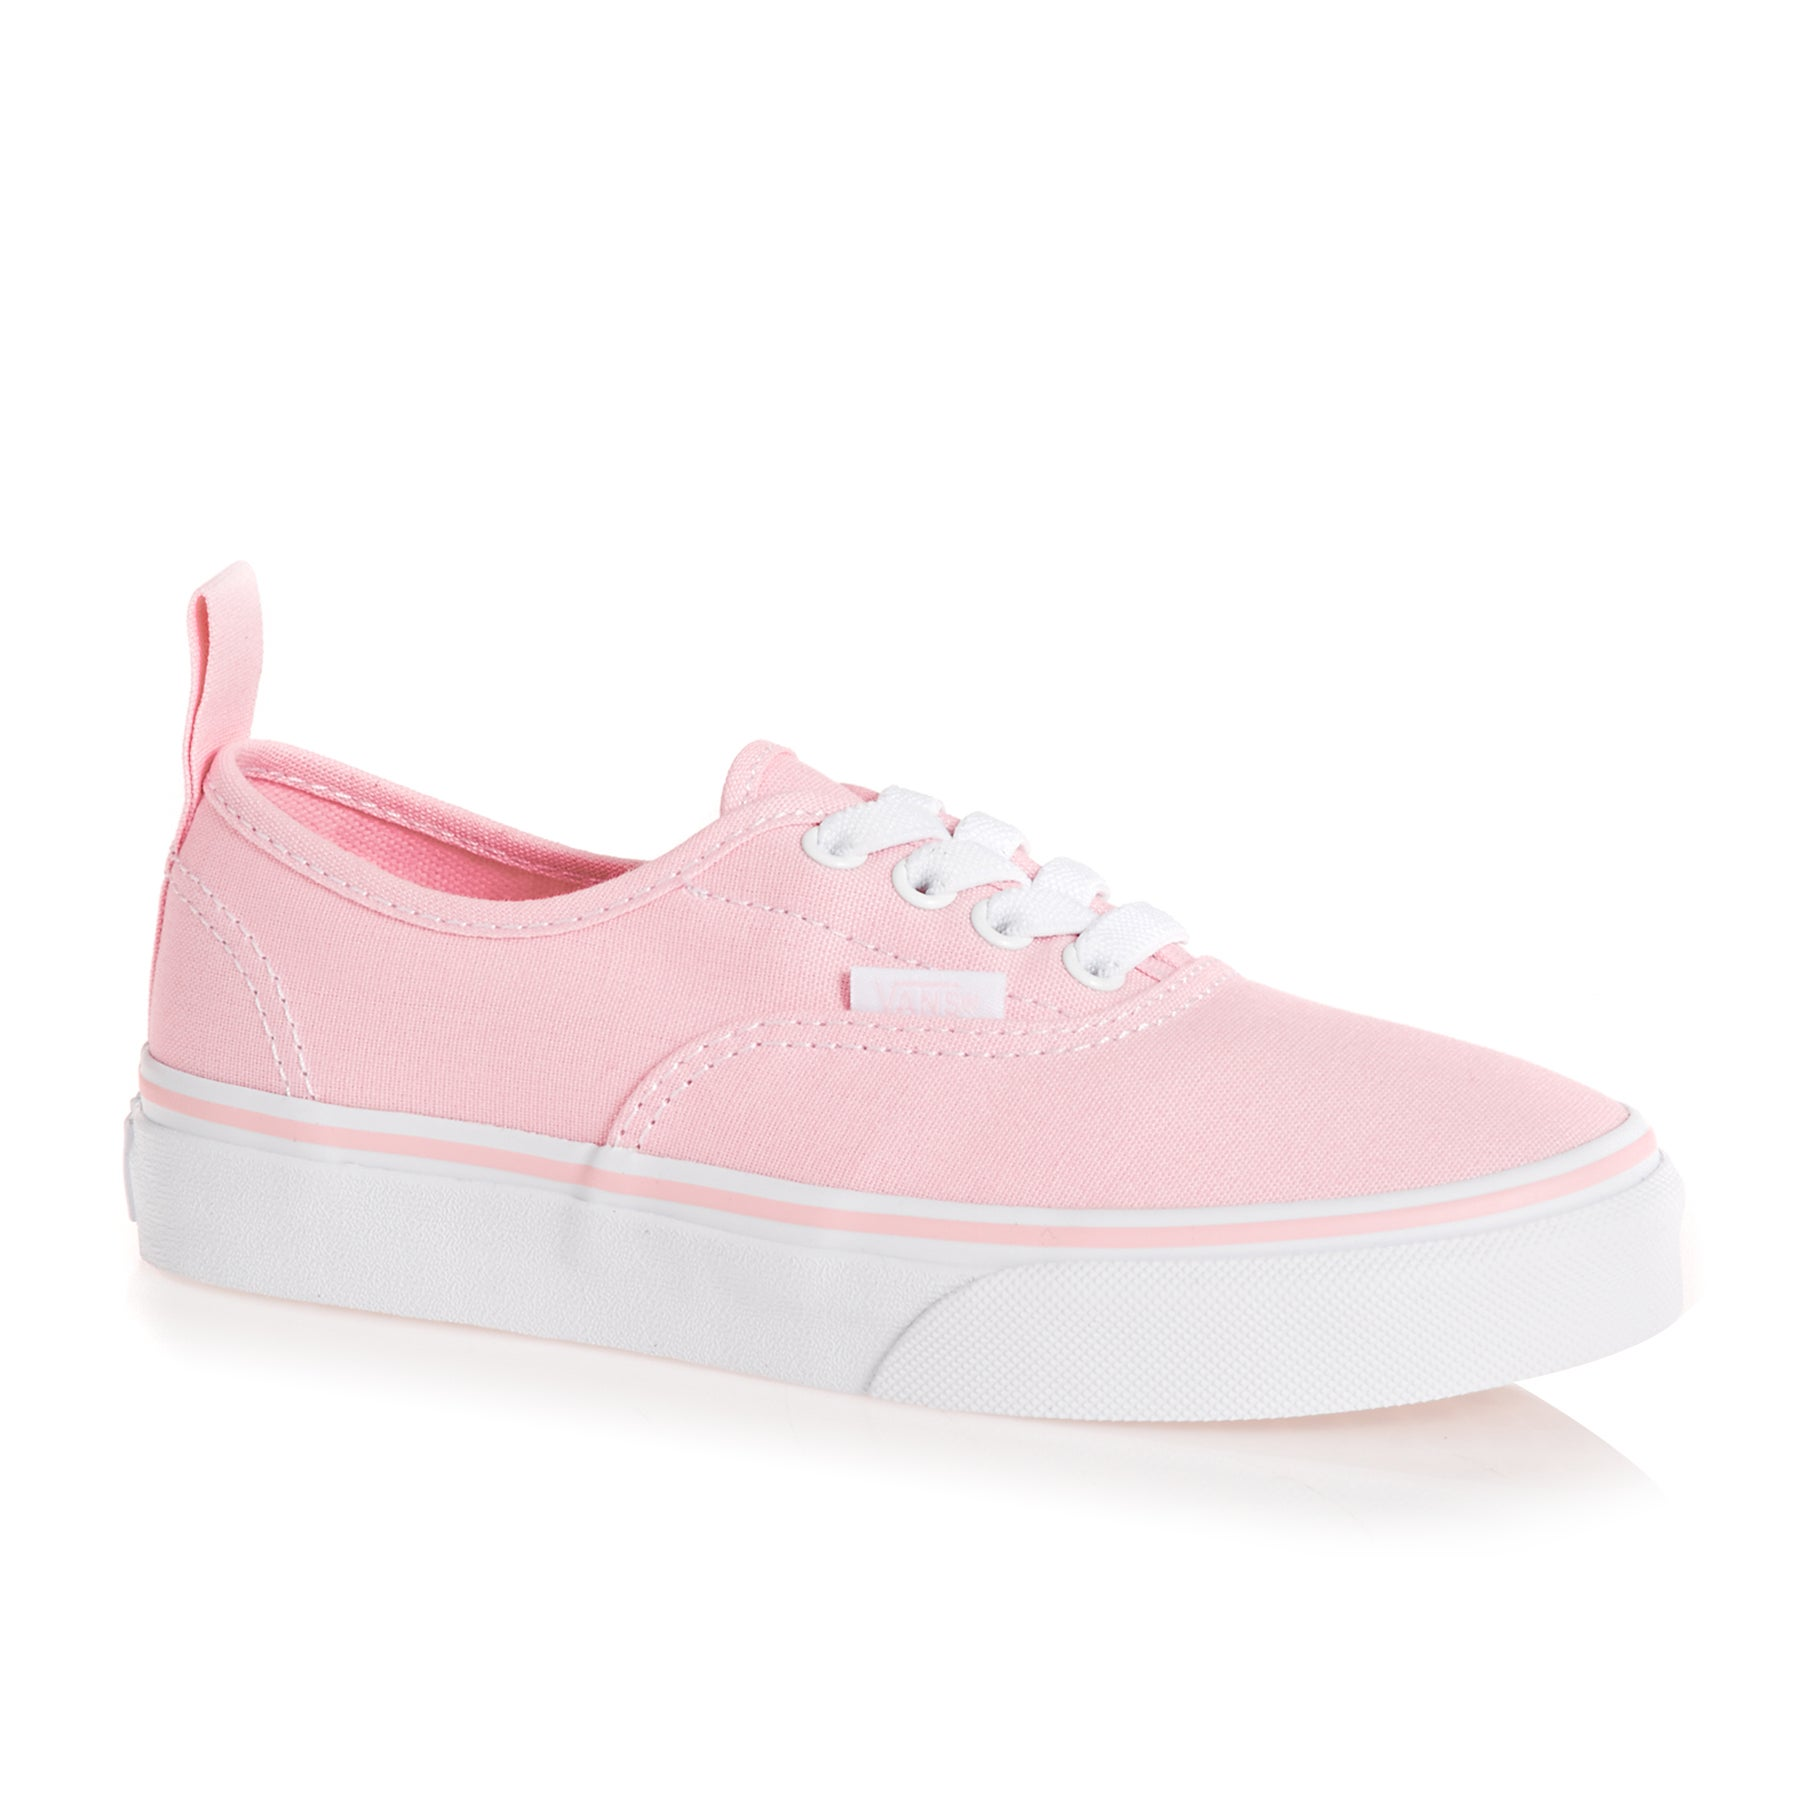 Vans Authentic Elastic Check Lace Kids Shoes - Chalk Pink True White